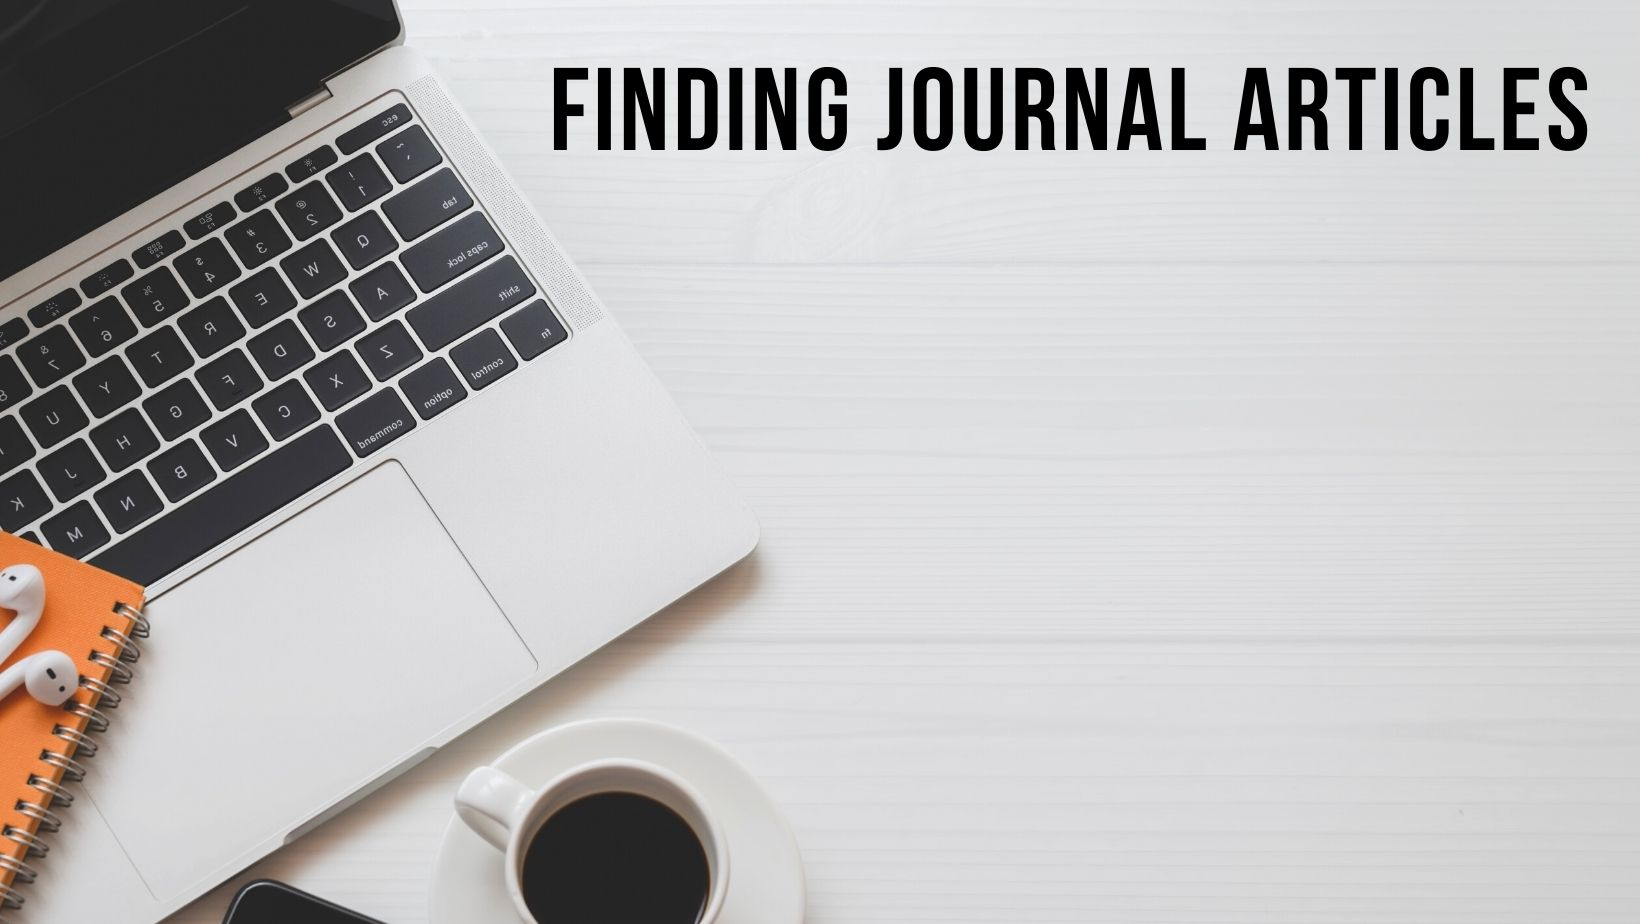 A picture of a laptop and notepad to show finding journal articles